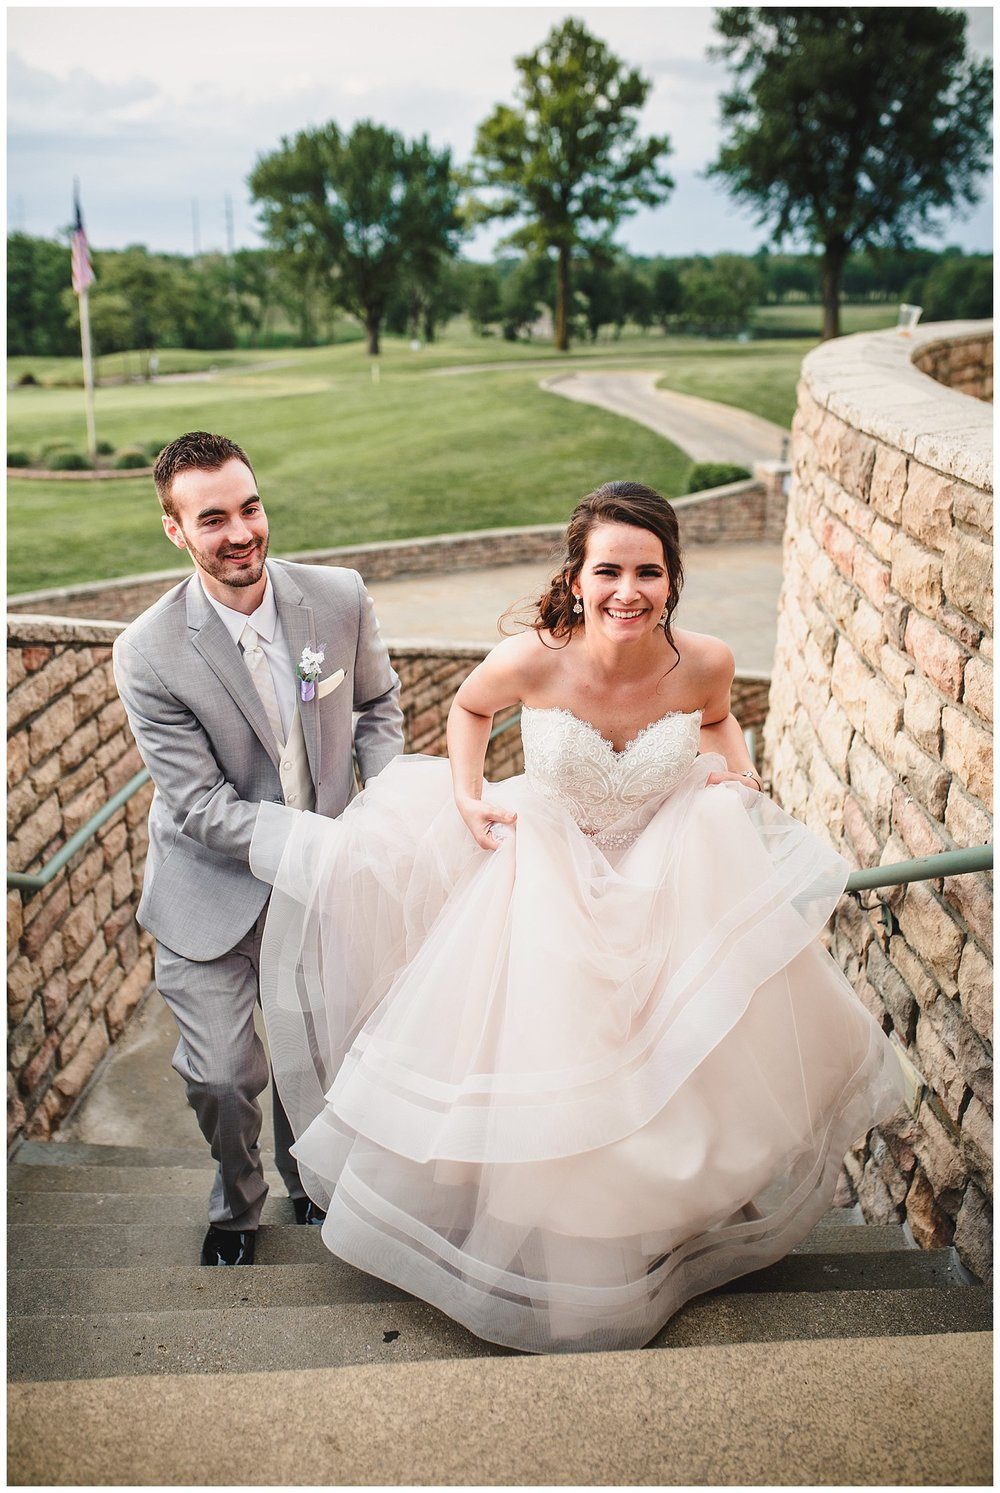 Tiffany_Greens_Golf_Club_Kansas_City_Wedding_Nikki_David_Spring_Wedding_Kelsey_Diane_Photography_0094.jpg